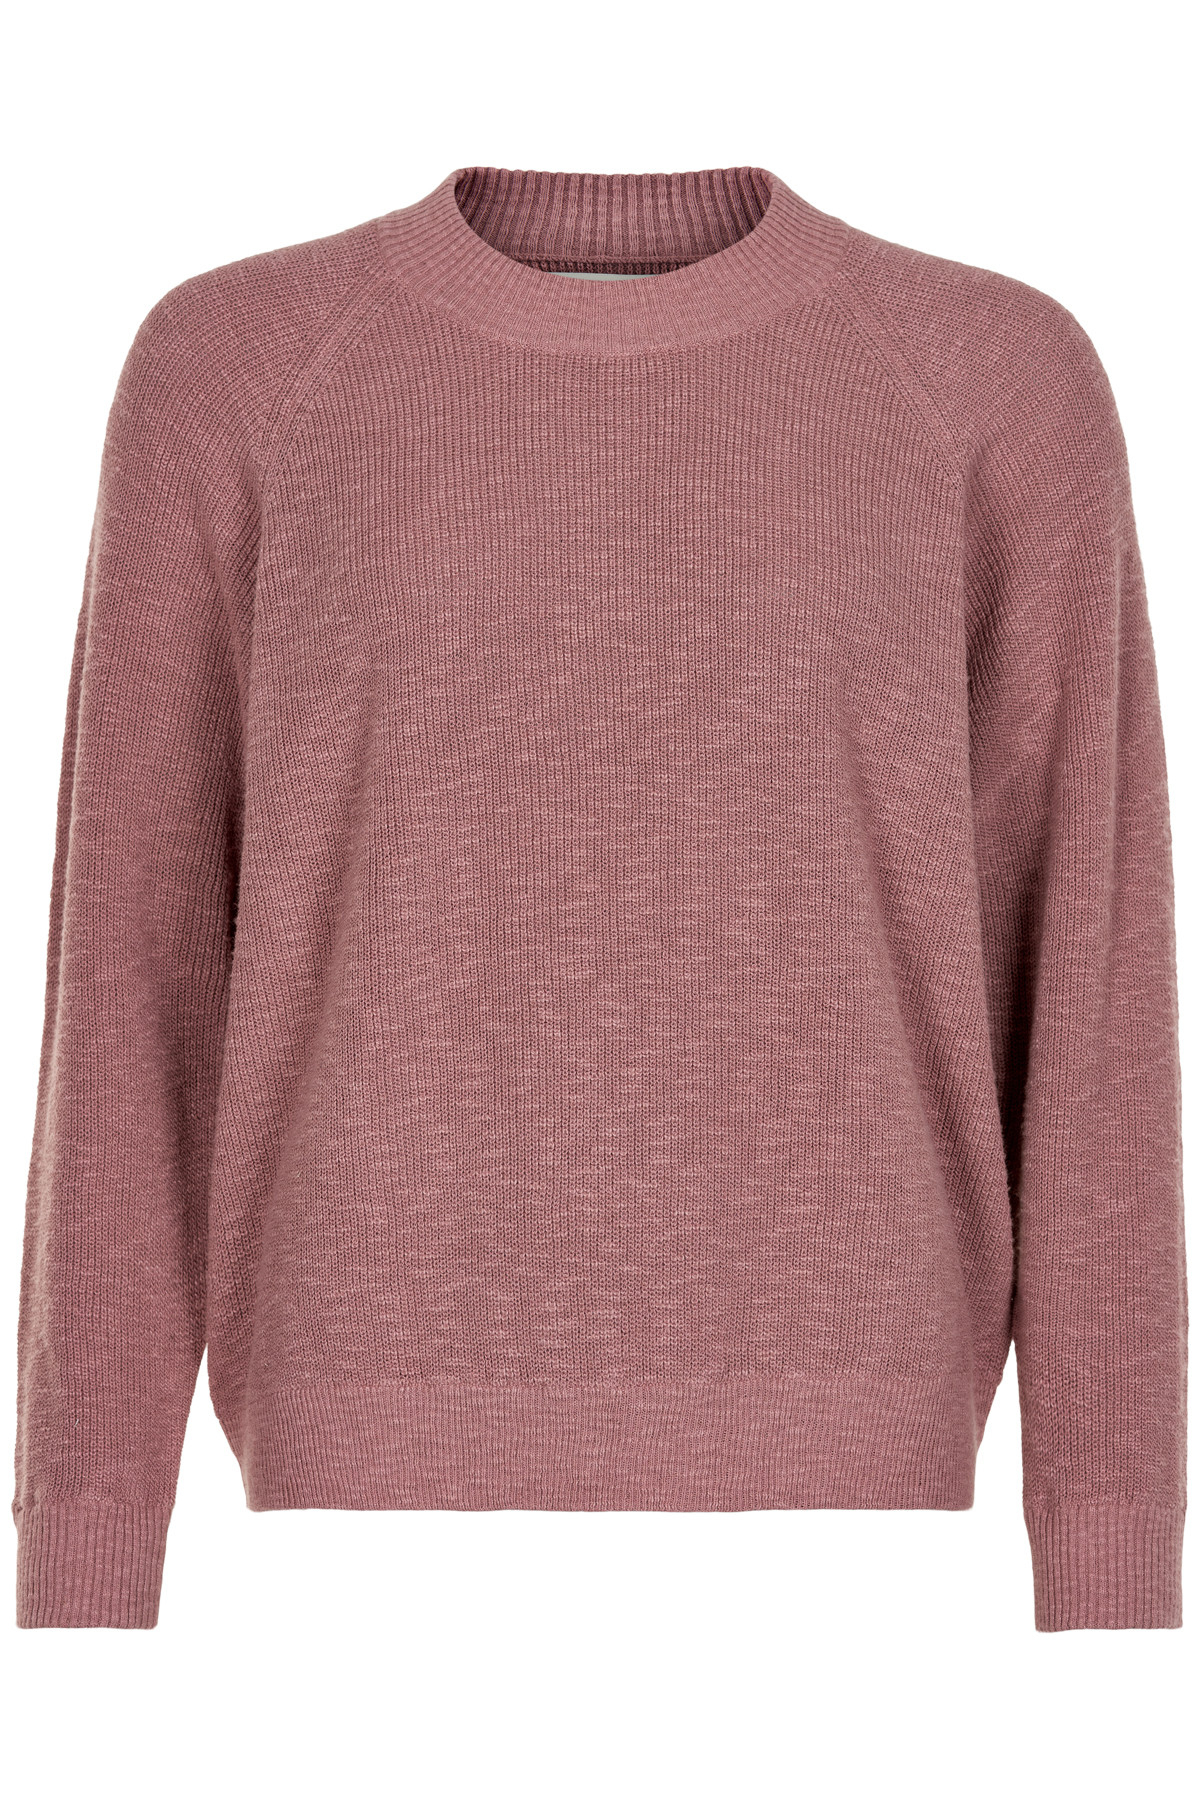 Image of   AND LESS ALBAMBINA PULLOVER 5220201 2530 (Nosta Rose, S)